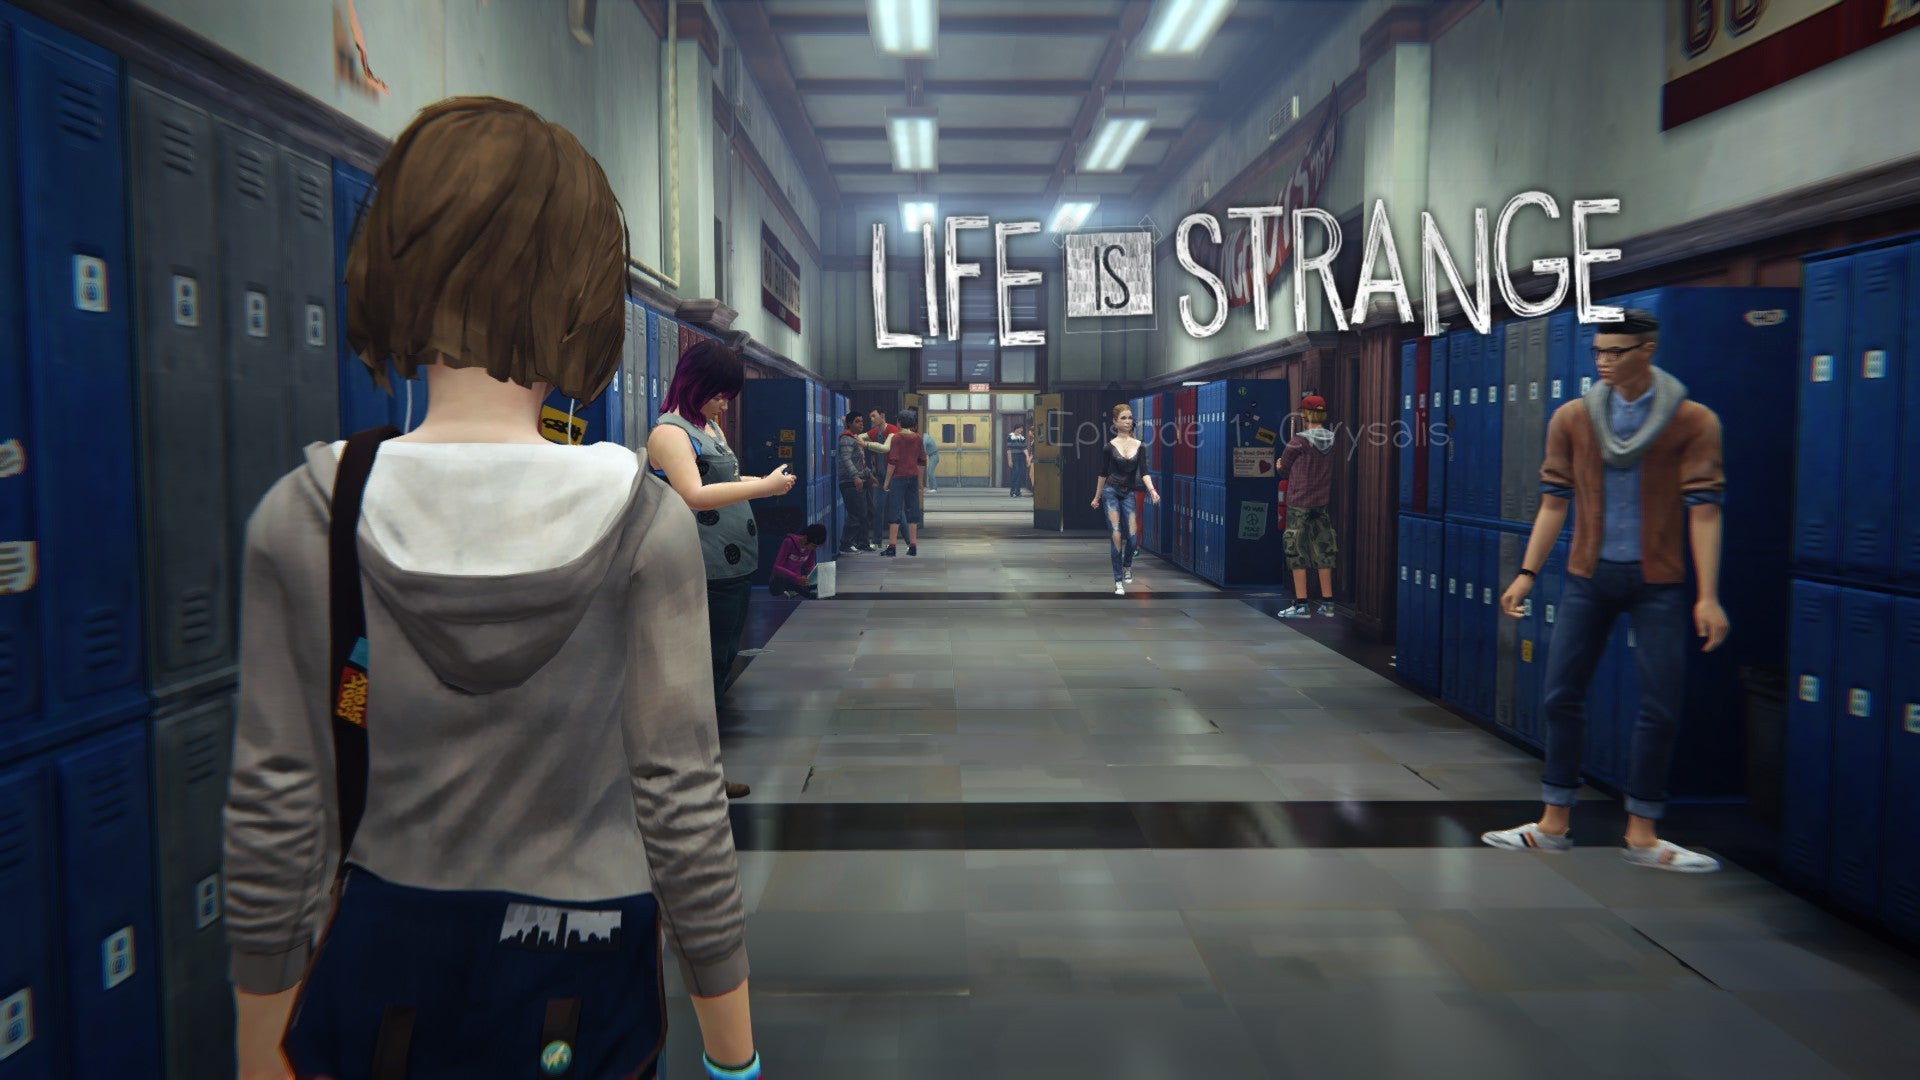 Life is Strange review: Time-traveling teenage-girl